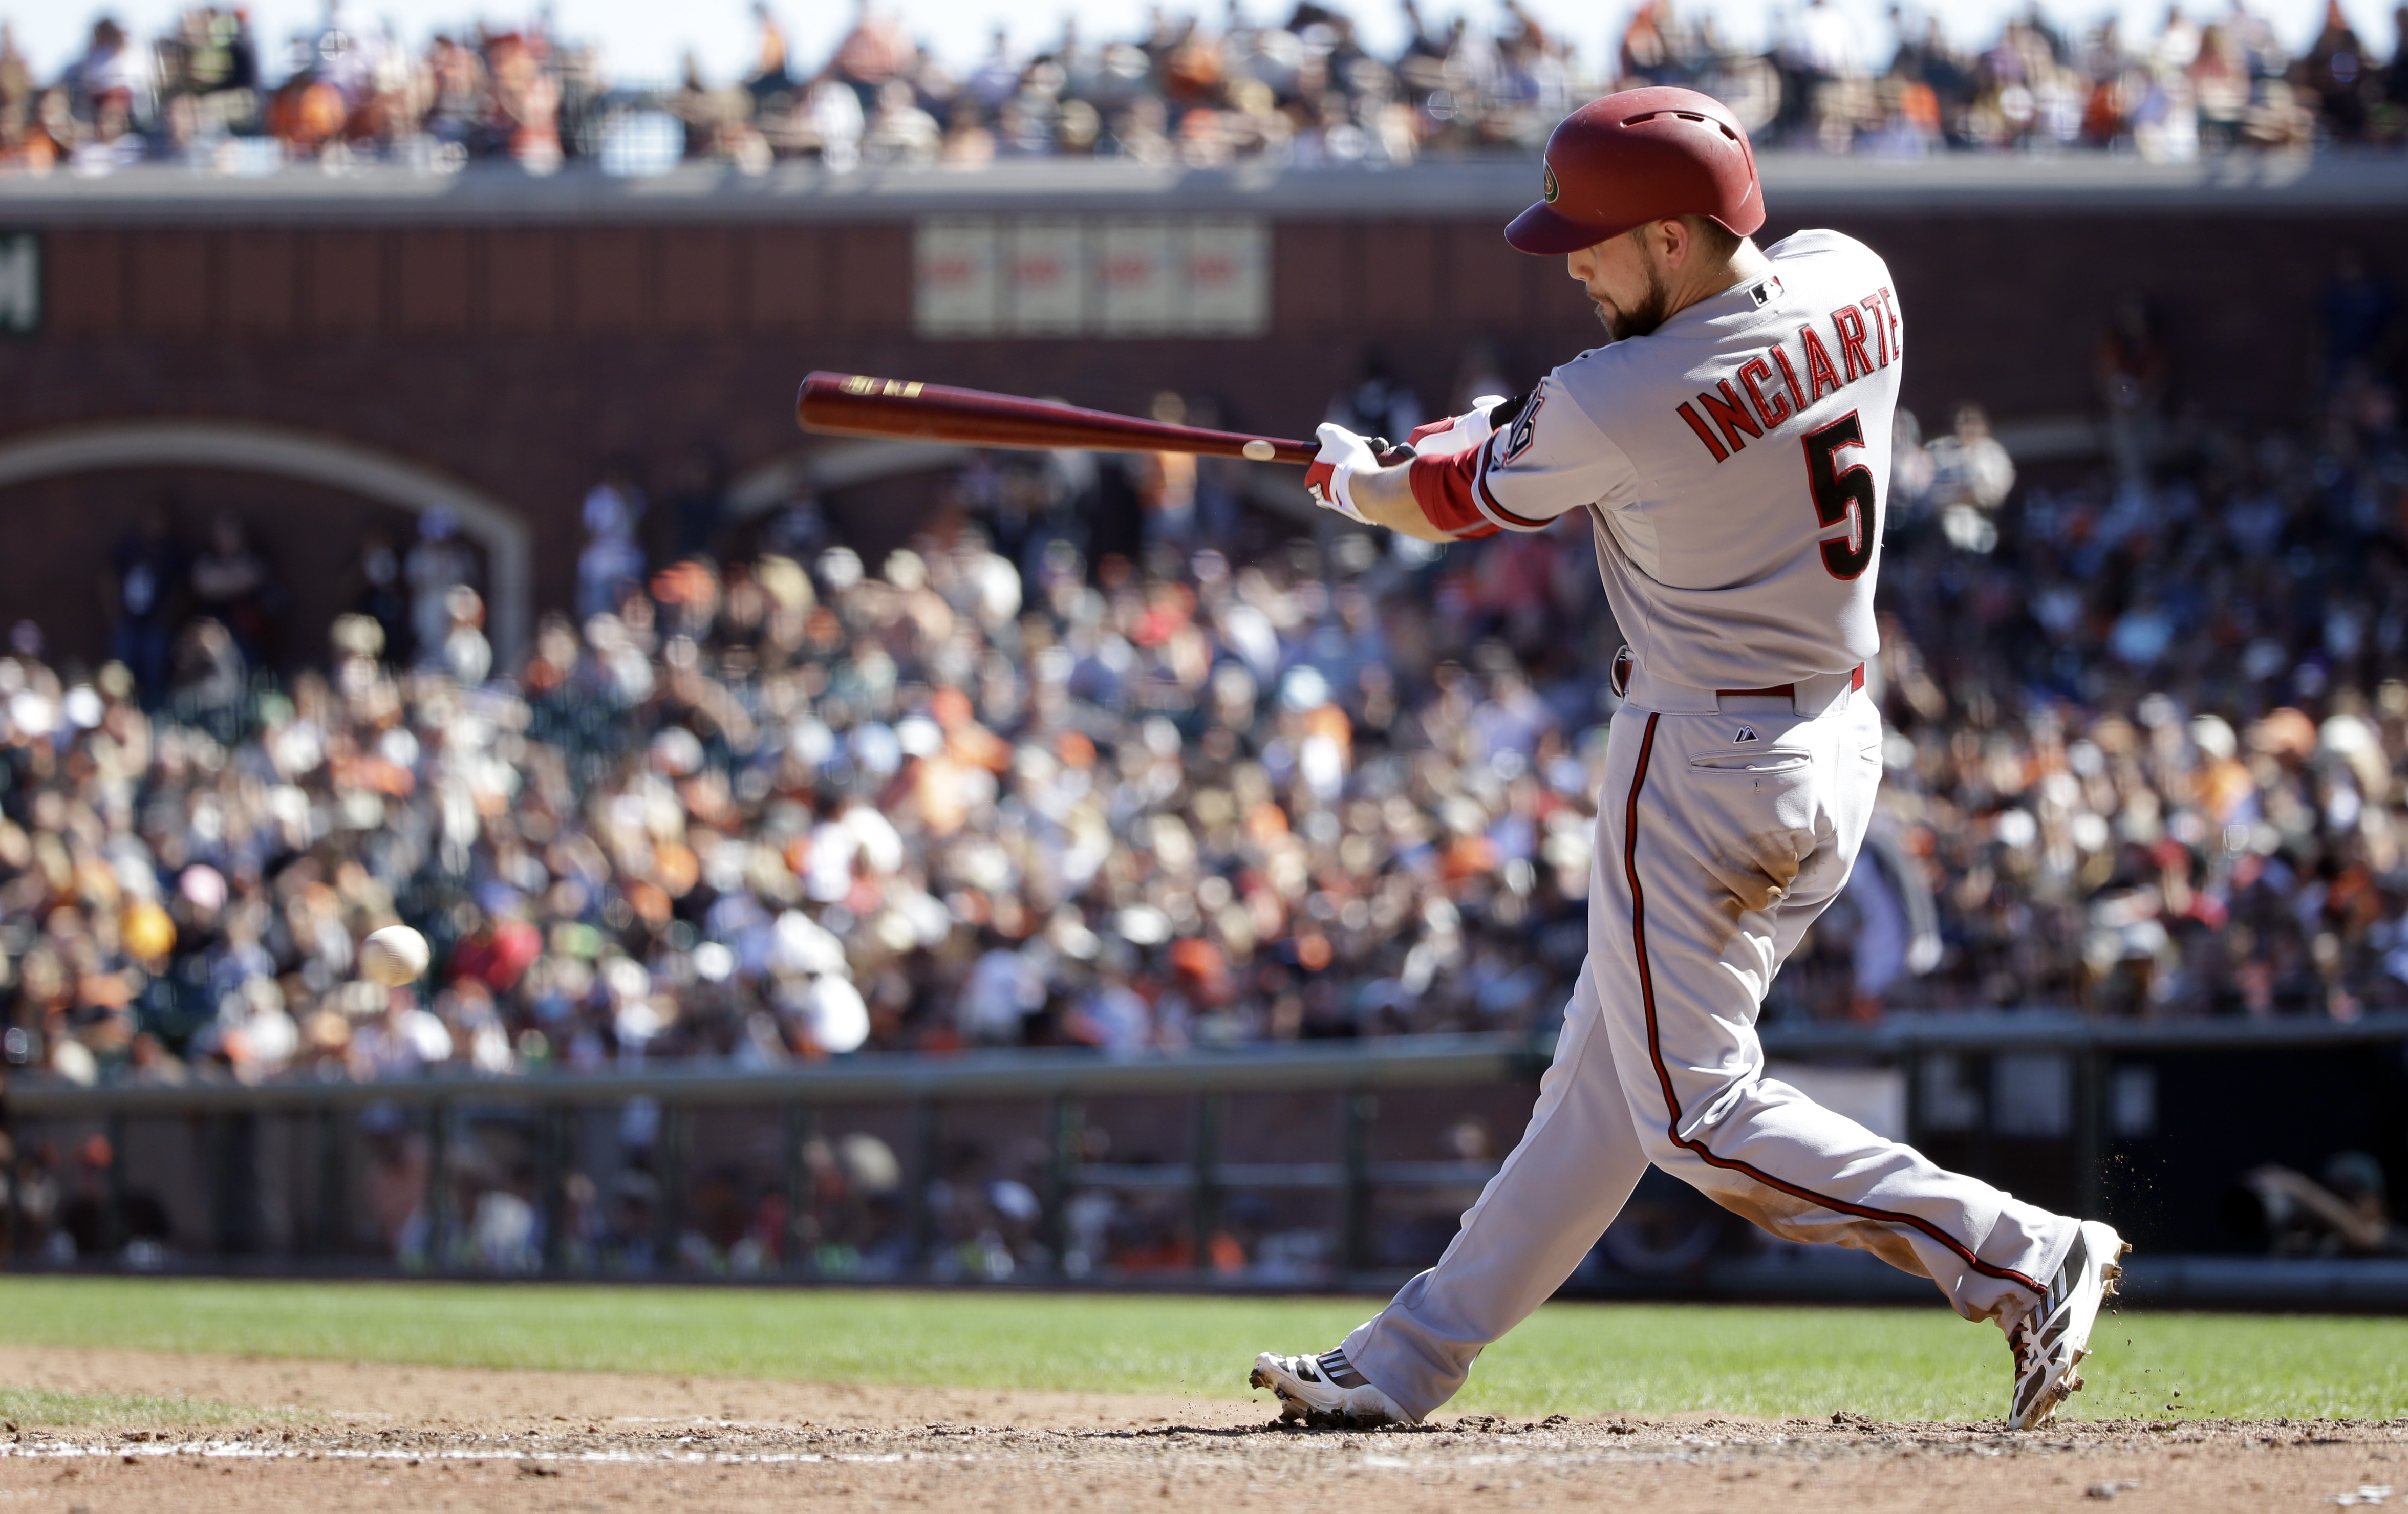 Arizona Diamondbacks' Ender Inciarte drives in a run with a single against the San Francisco Giants during the sixth inning of a baseball game on Saturday, Sept. 19, 2015, in San Francisco. (AP Photo/Marcio Jose Sanchez)